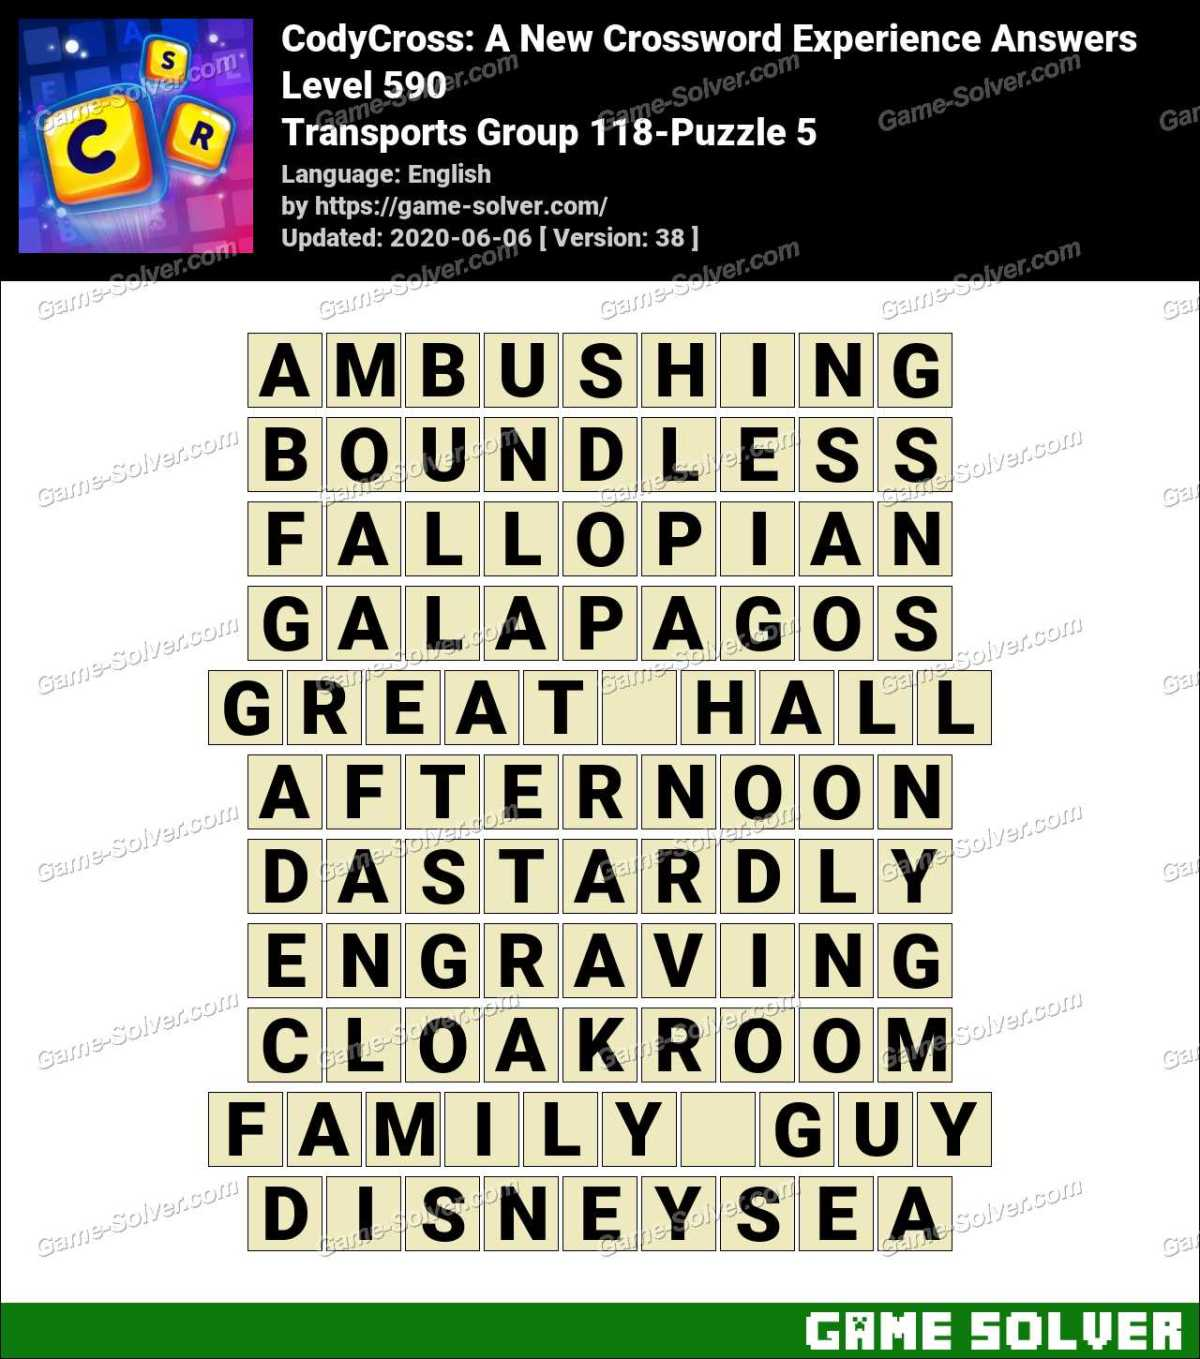 CodyCross Transports Group 118-Puzzle 5 Answers